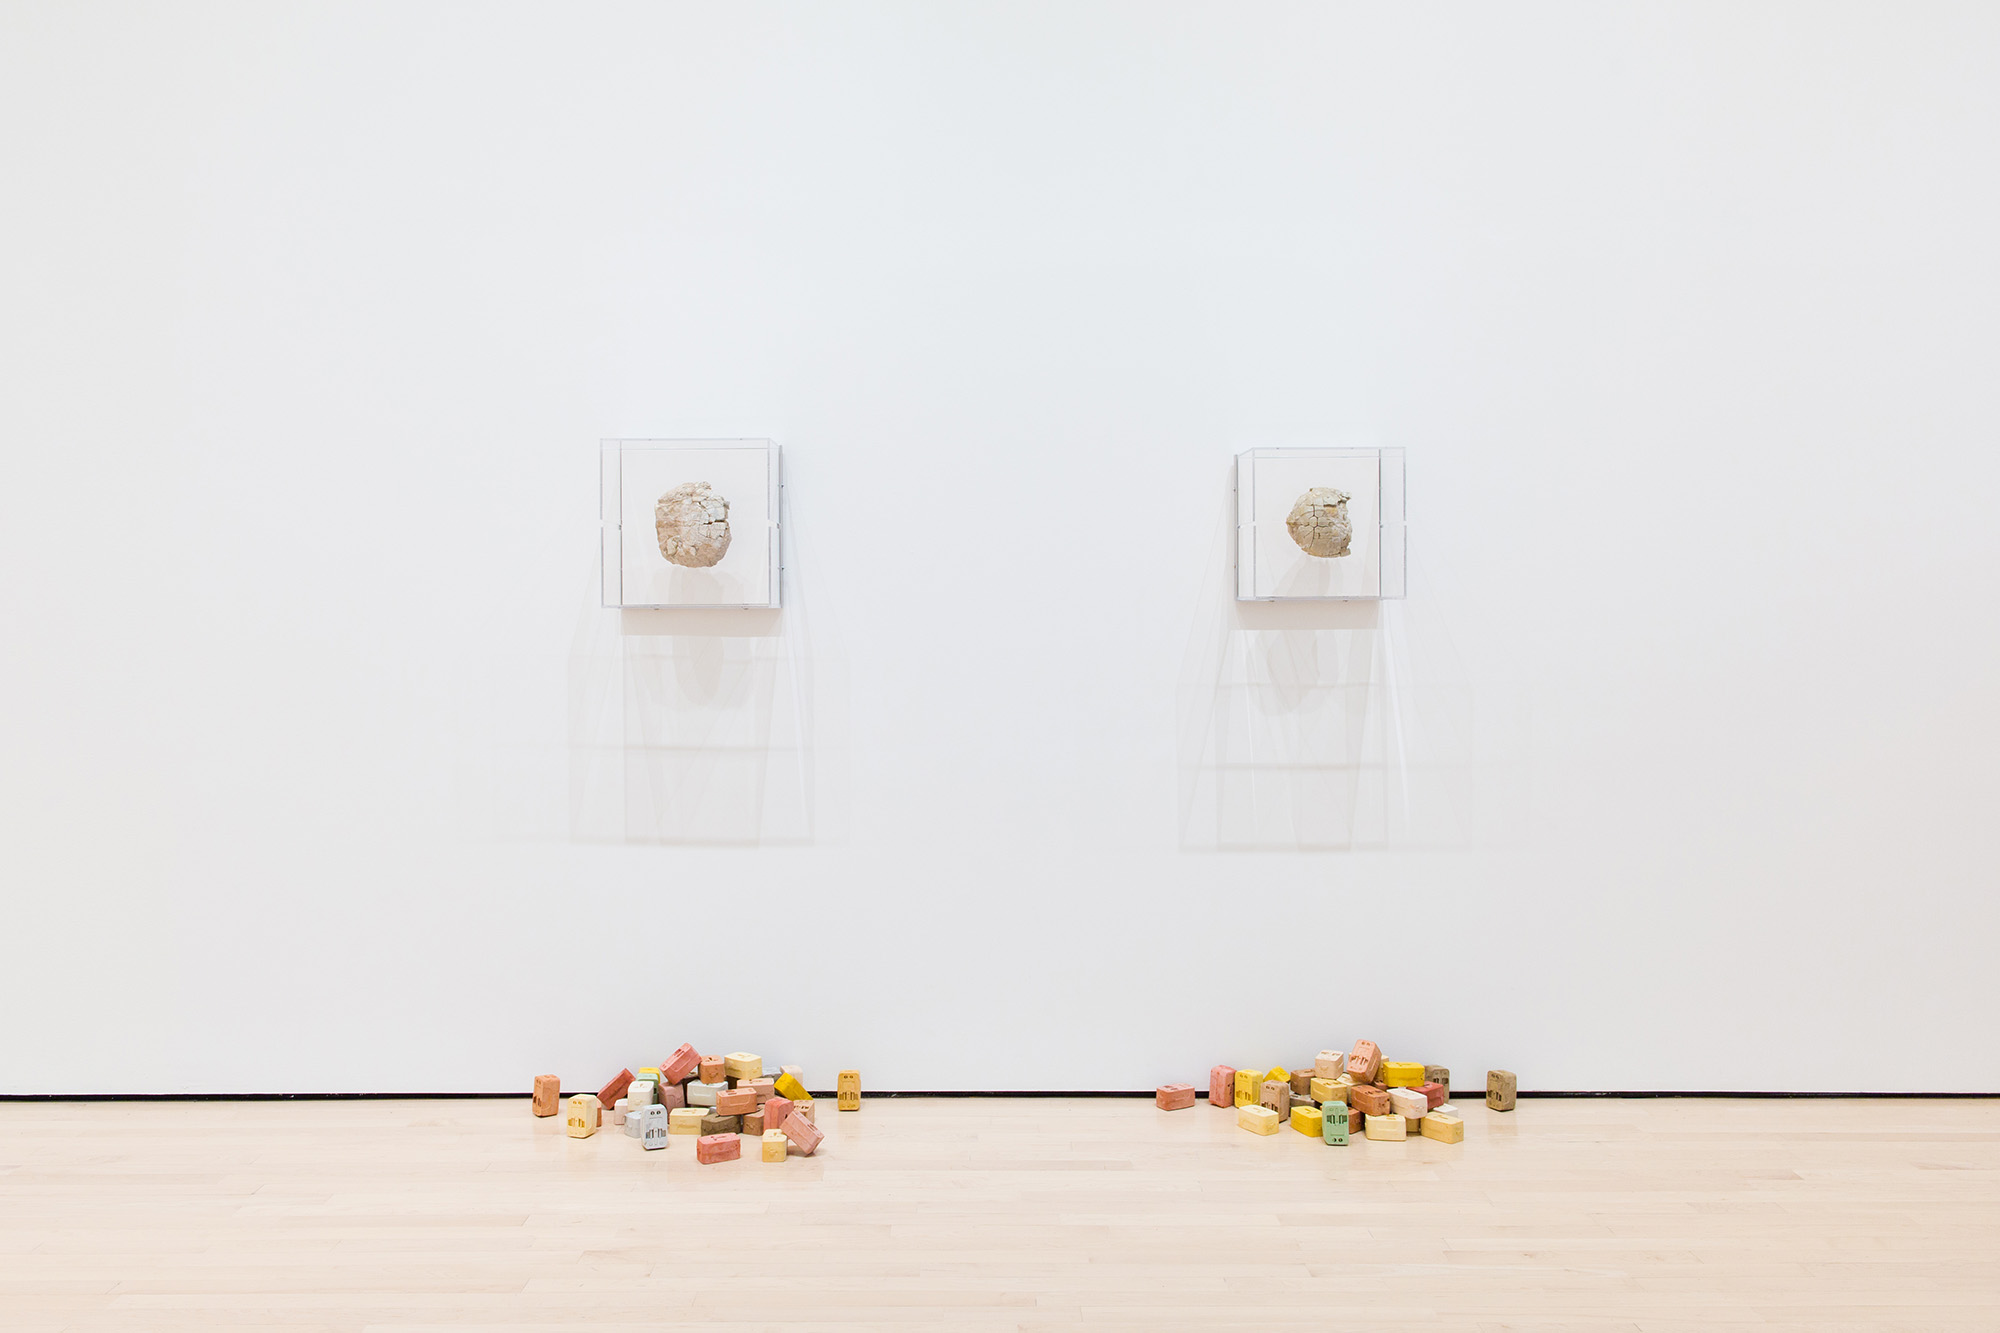 <i>Field Station: Daniel G. Baird</i>, installation view at the Eli and Edythe Broad Art Museum at Michigan State University, 2017. Photo: Eat Pomegranate Photography